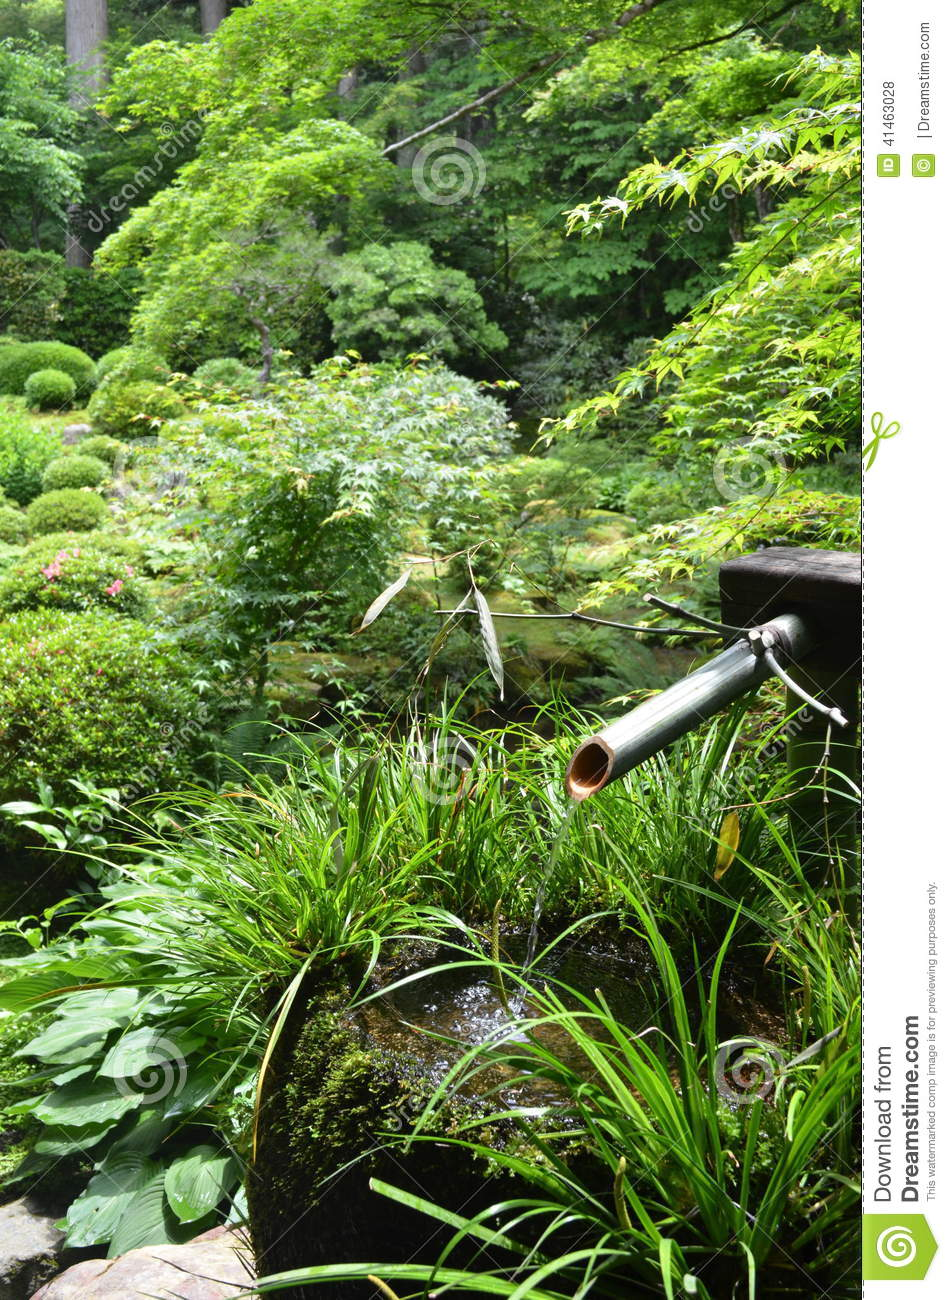 Fontaine japonaise de jardin photo stock image 41463028 for Fontaine zen de jardin